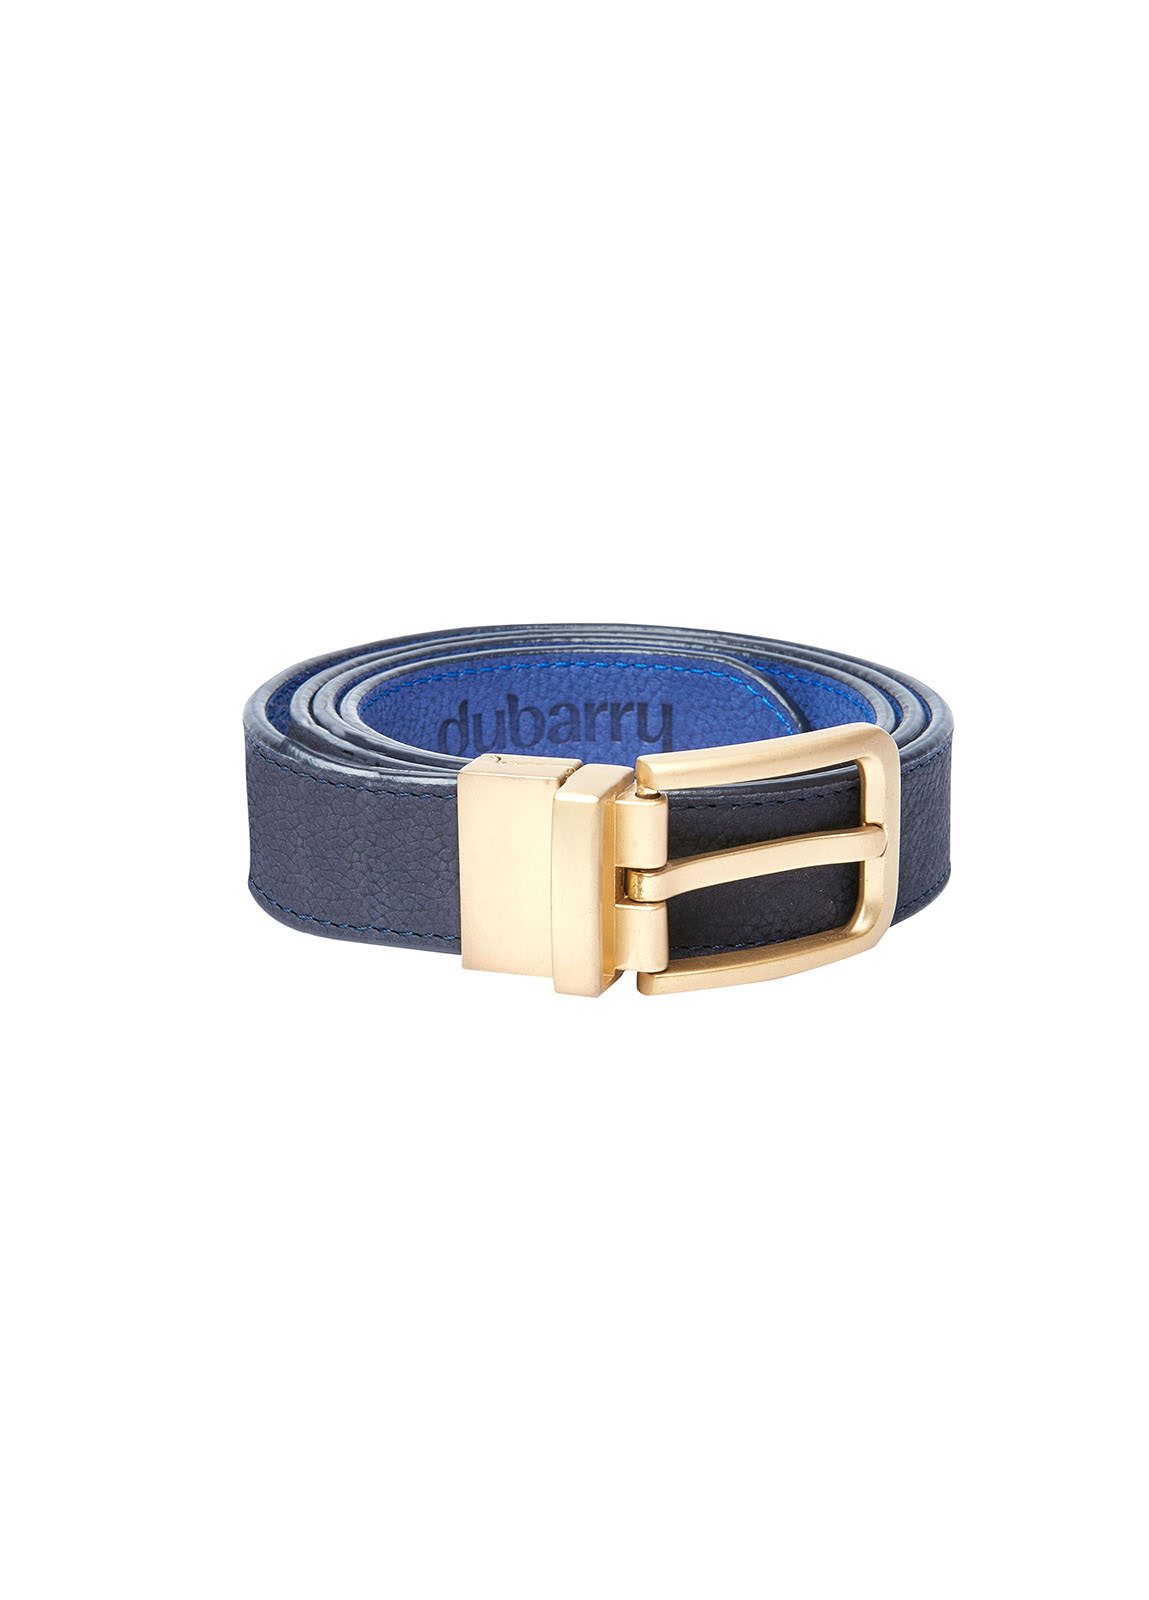 Foynes Leather Belt - Navy